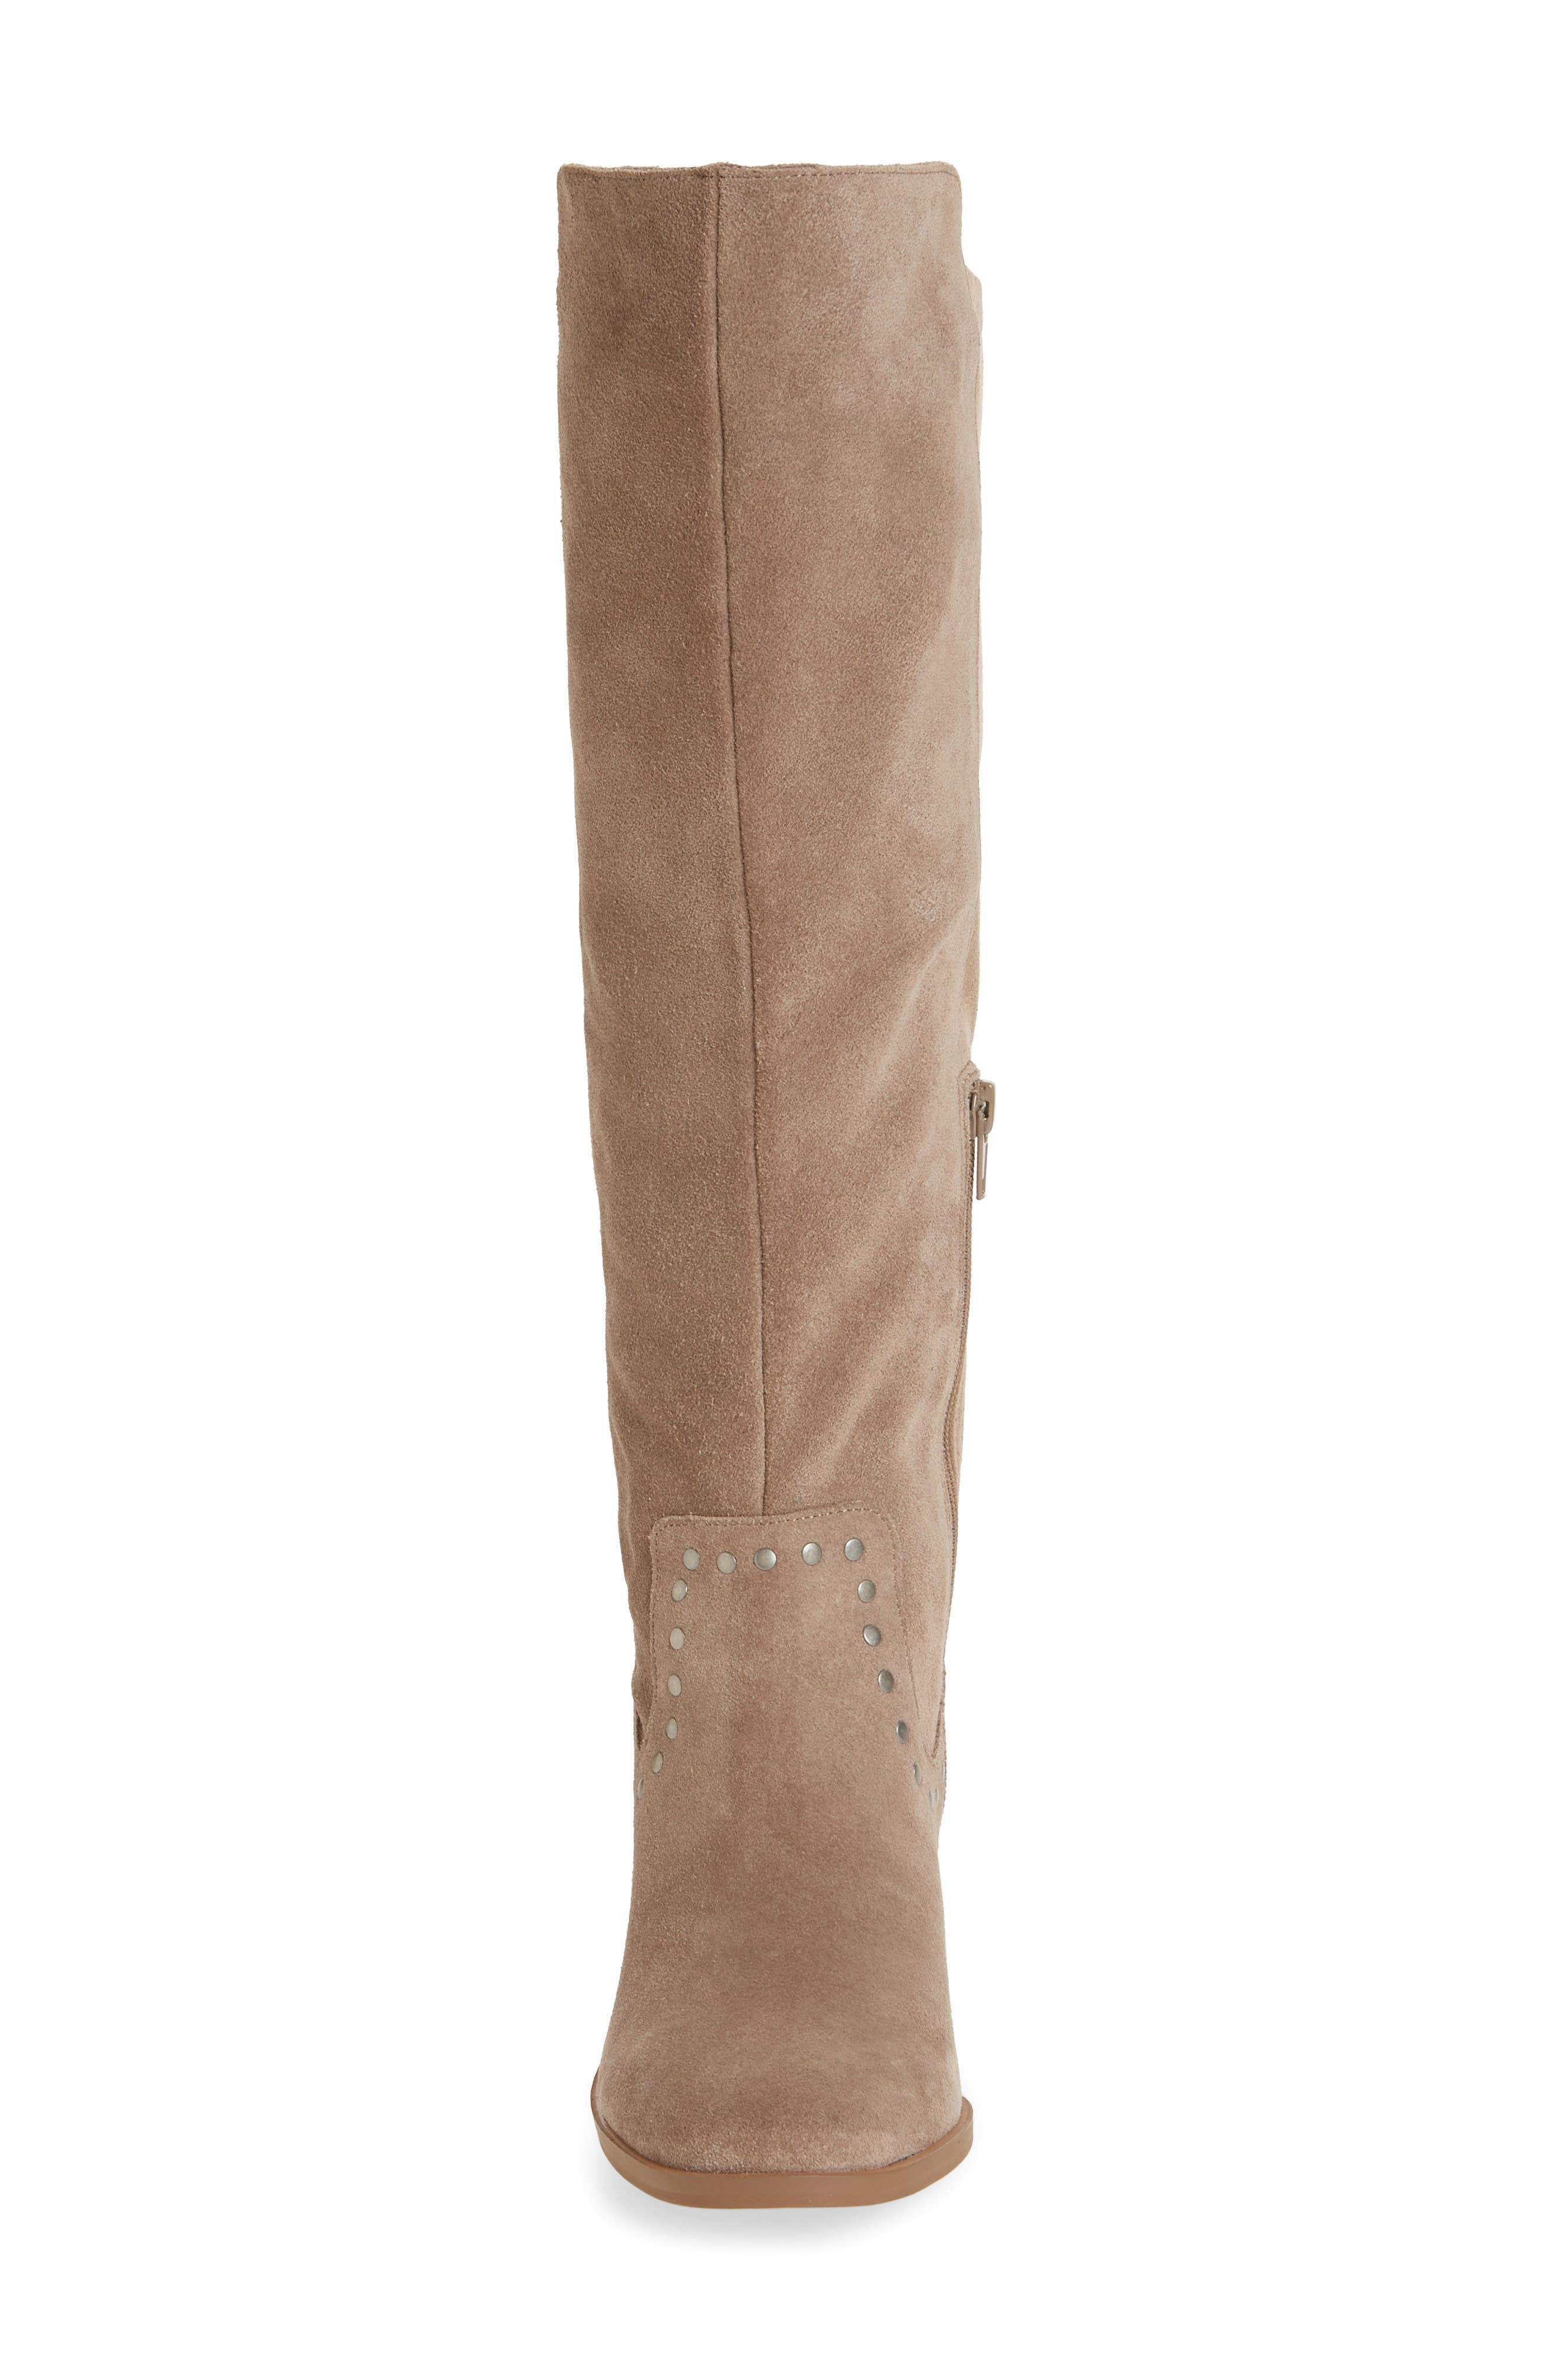 Calvenia Knee High Boot,                             Alternate thumbnail 4, color,                             FALL TAUPE SUEDE